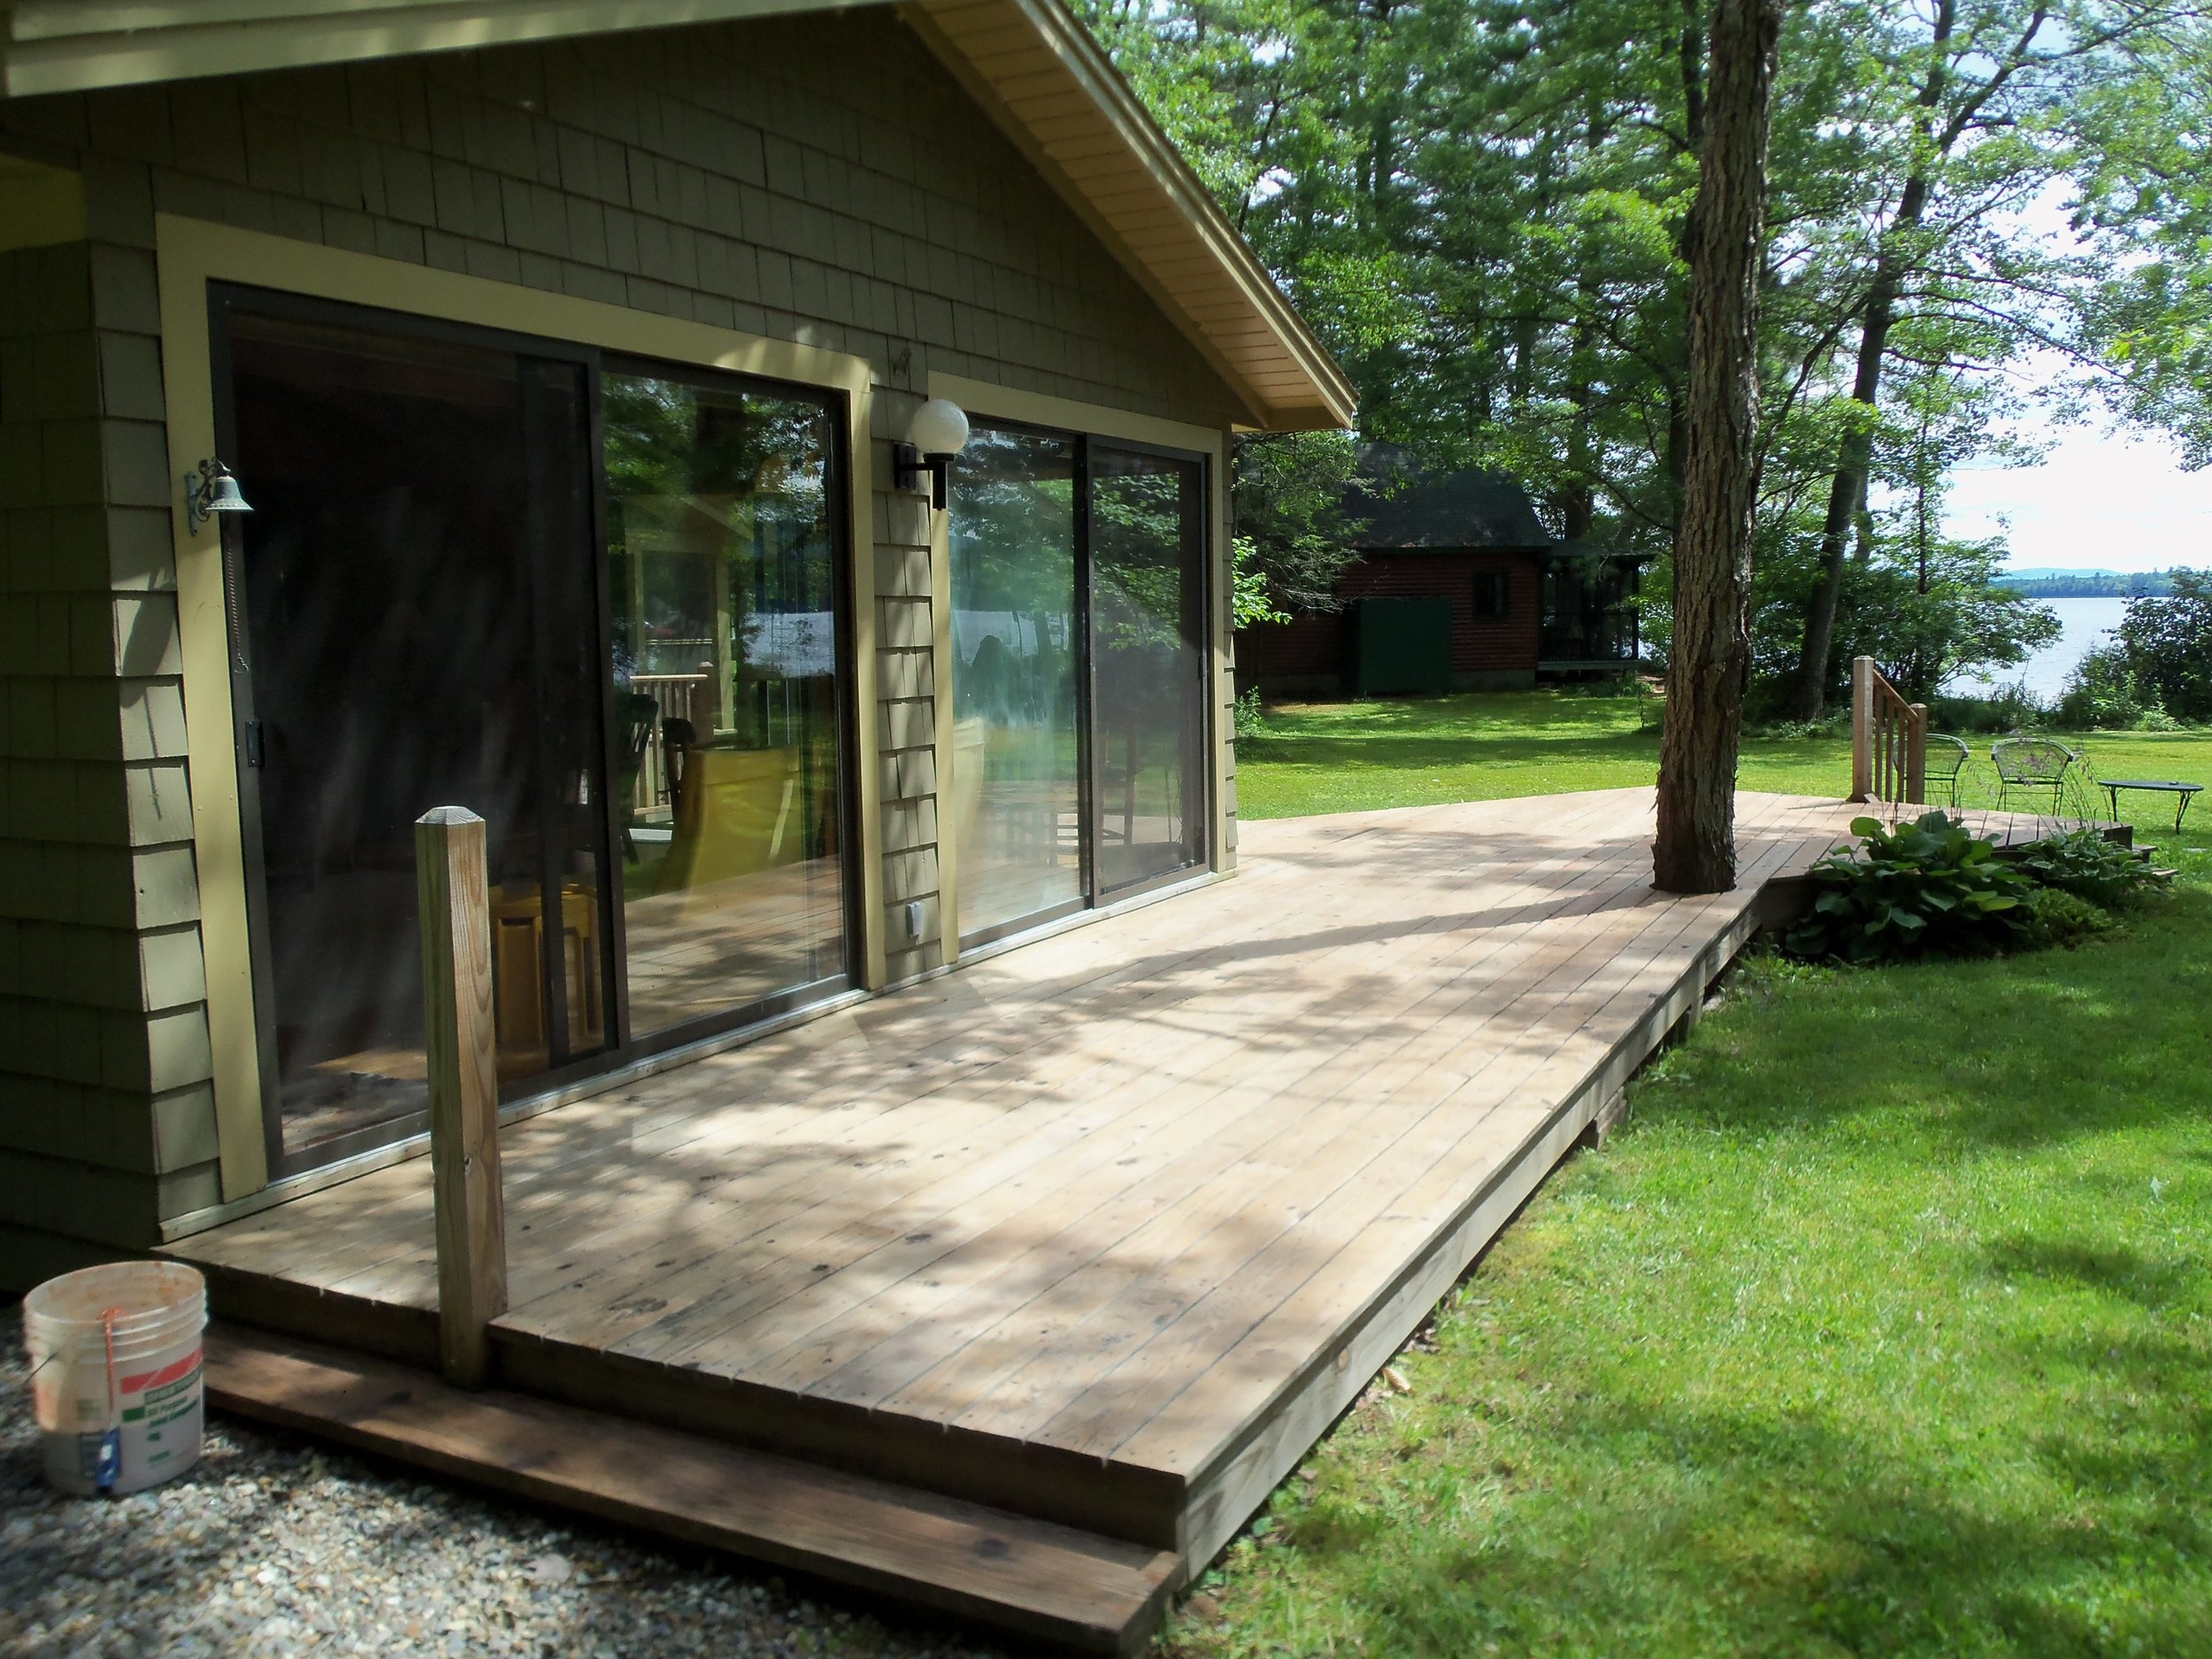 Package 2: Week at a cabin in Weld, Maine. This 4 bedroom, 2 bath vacation home on Webb Lake has it all! Wonderful views of the lake and mountains from the glassed-in living room, screened-in porch, and spacious deck. First floor bedroom and laundry room and more. Private small sandy beach. Available Fall 2019 or Summer 2020. | Value: $1,750 | Minimum bid: $800